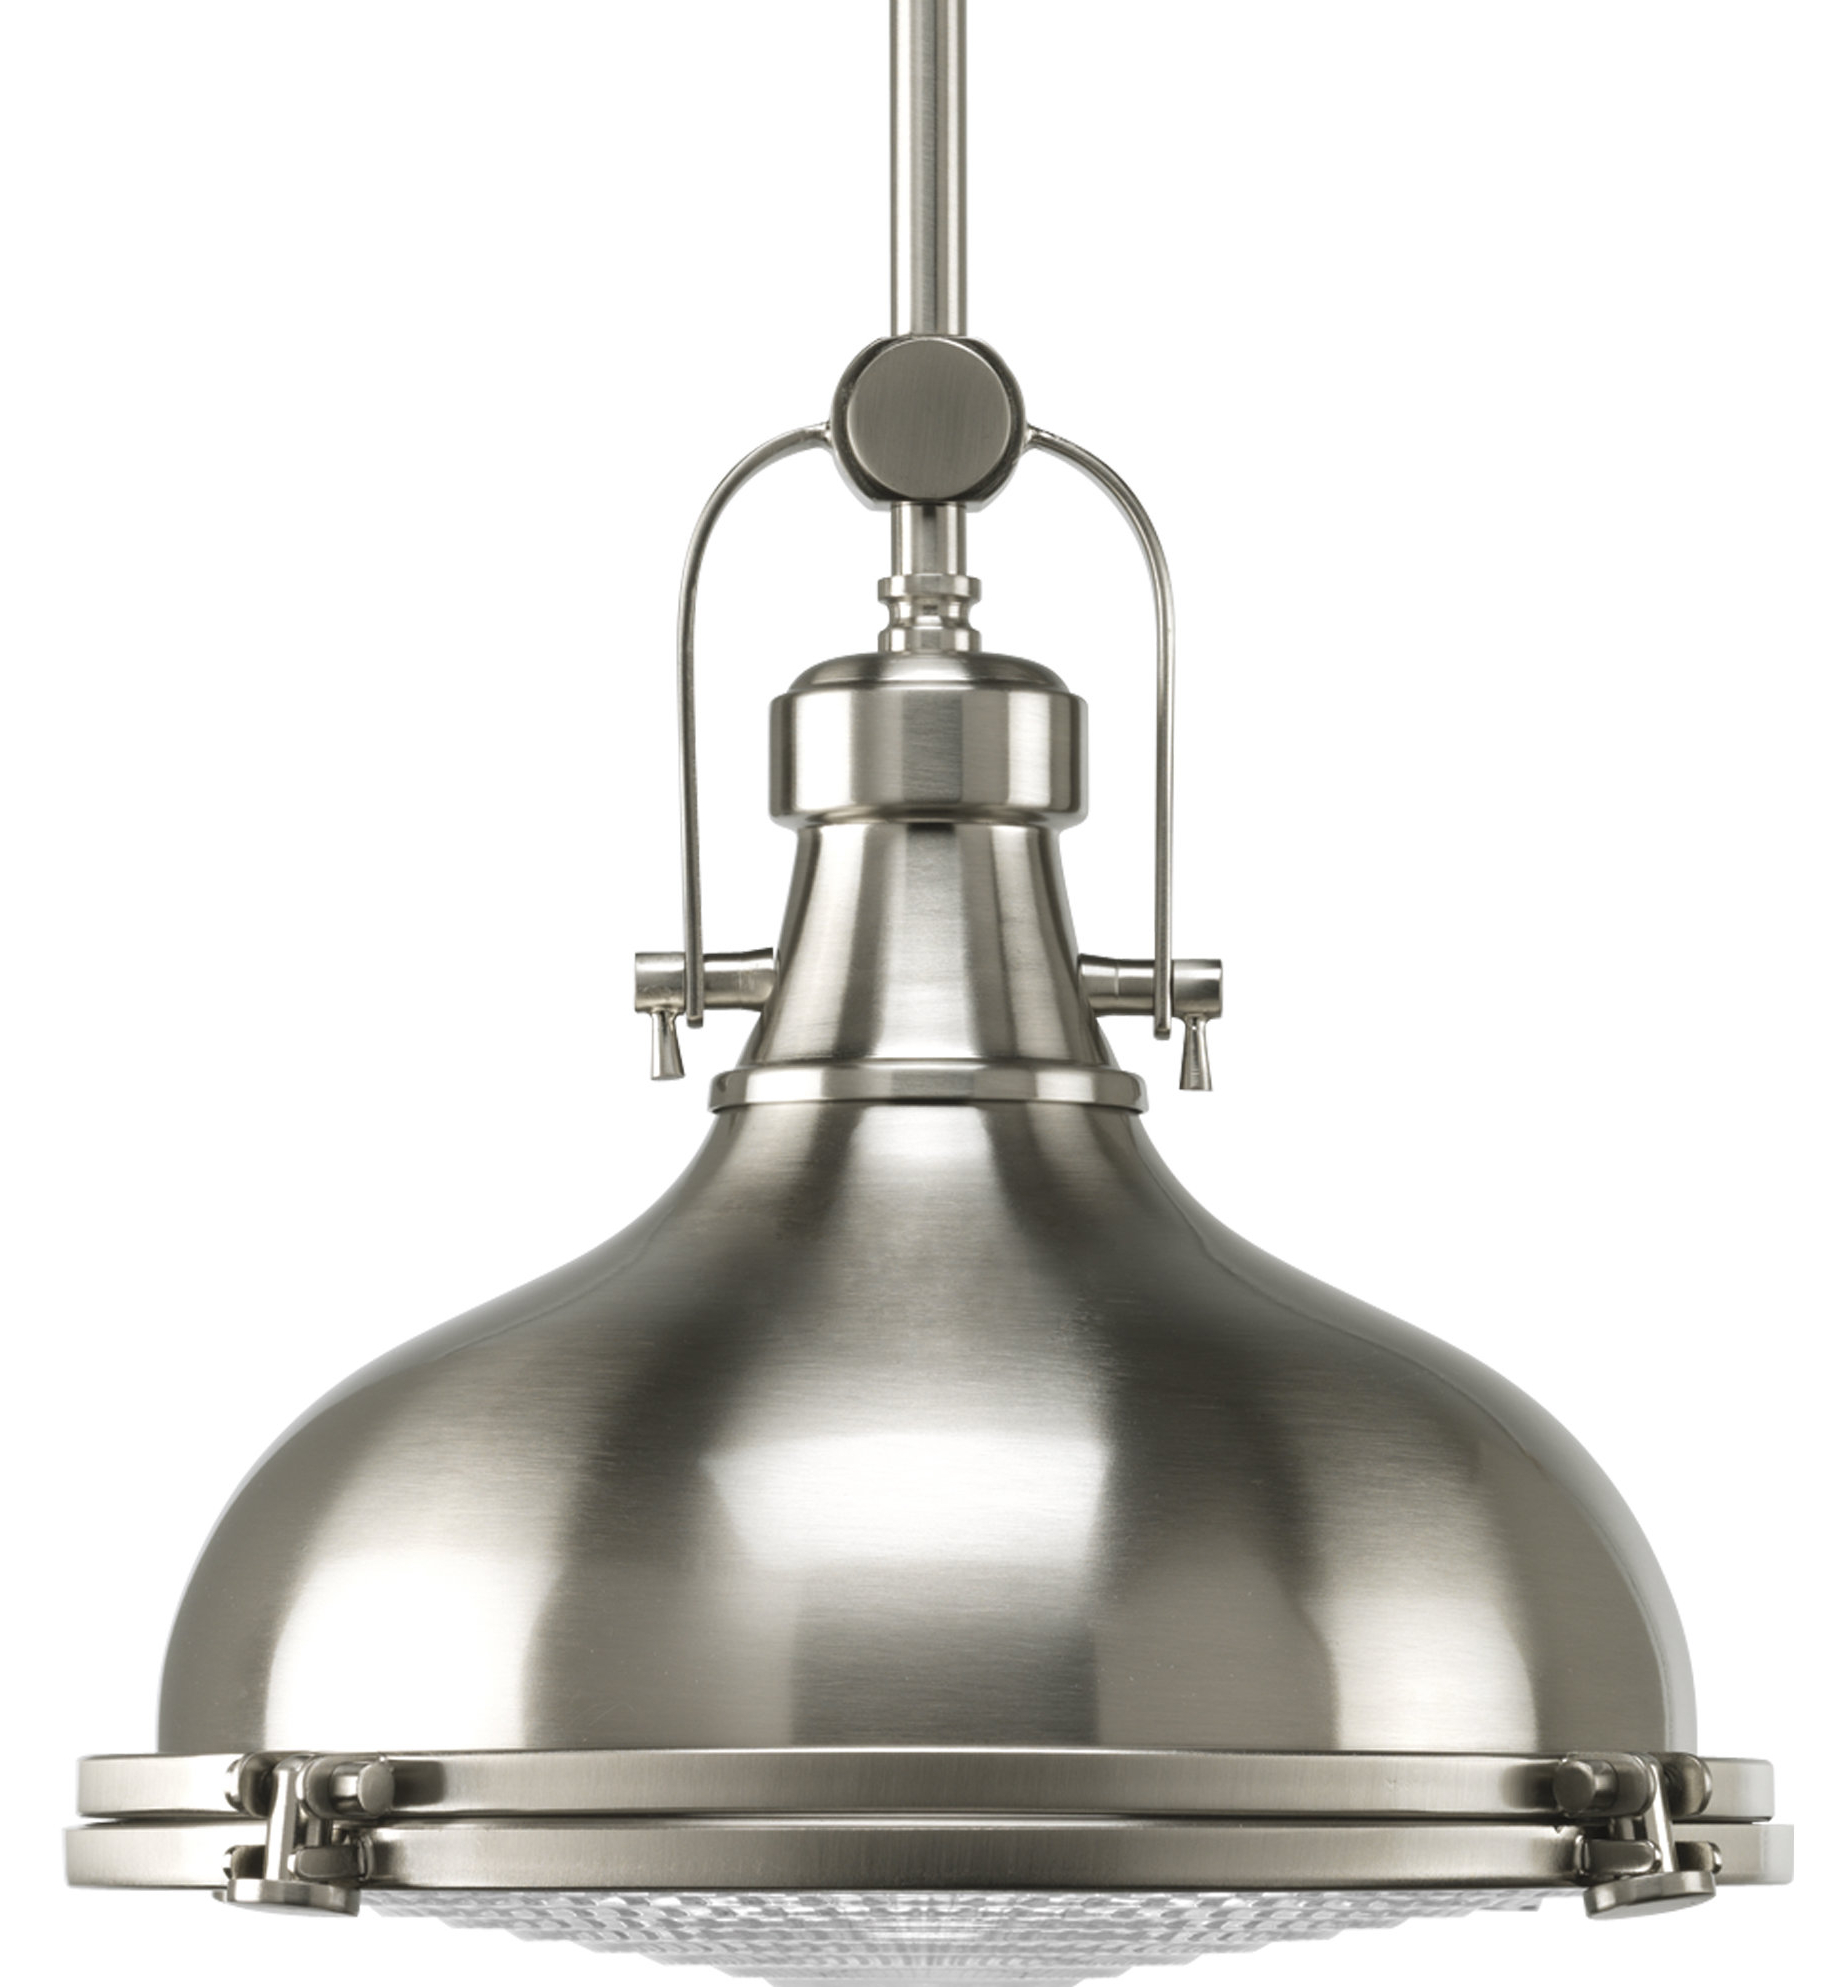 2020 Laurel Foundry Modern Farmhouse Freeda 1 Light Single Dome Pendant With Regard To Granville 3 Light Single Dome Pendants (View 3 of 20)